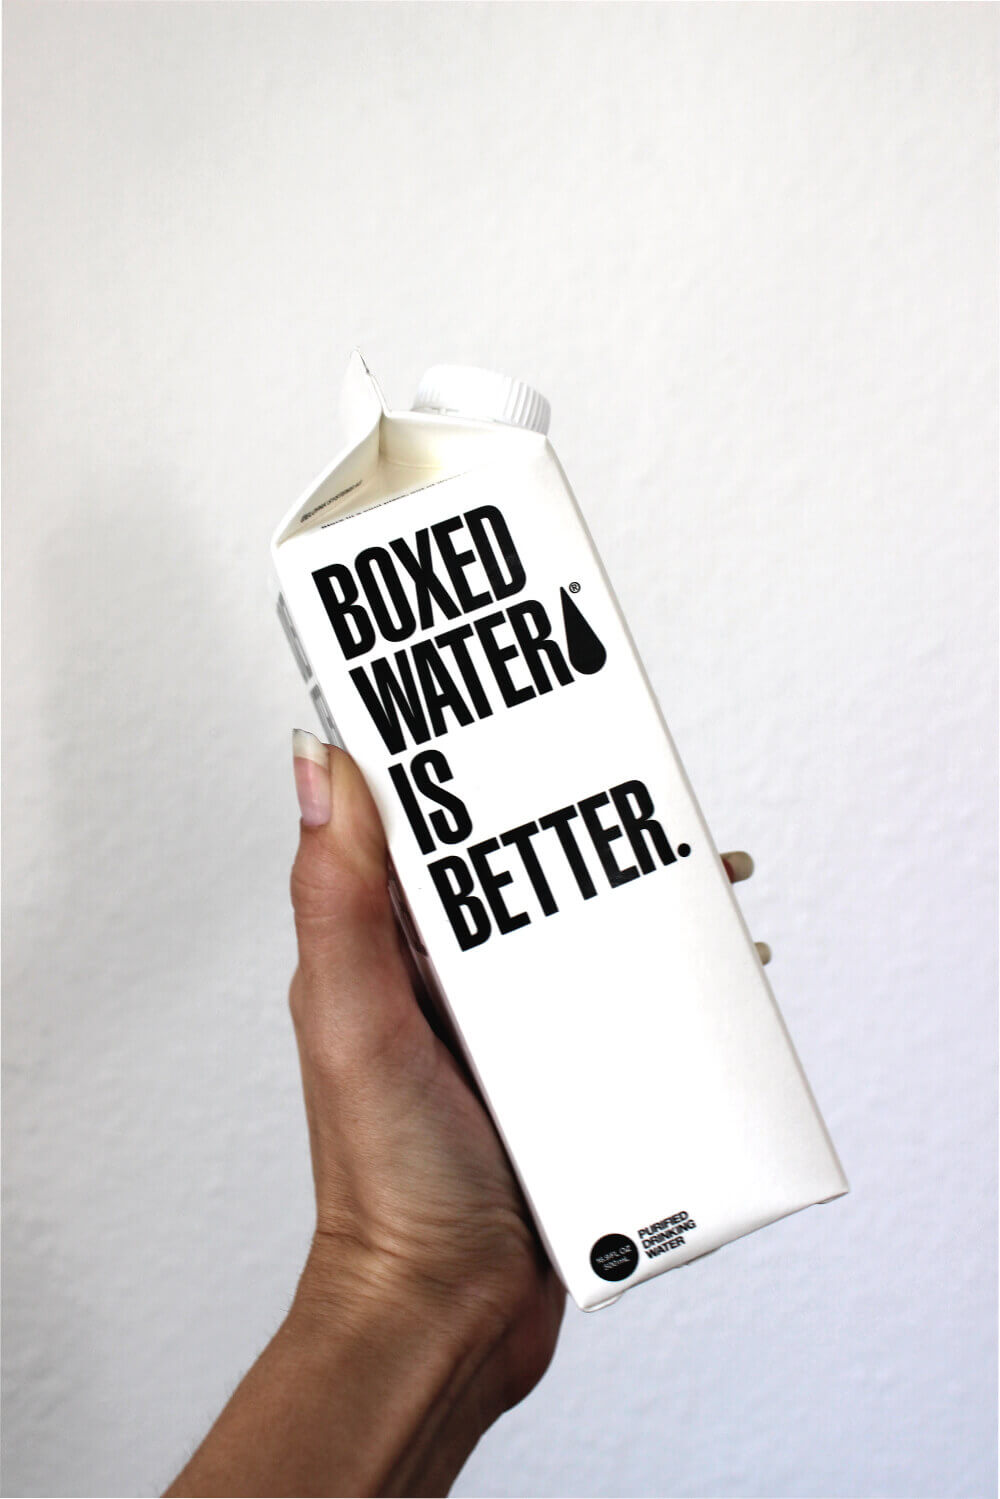 Boxed Water is Better sustainable packaging